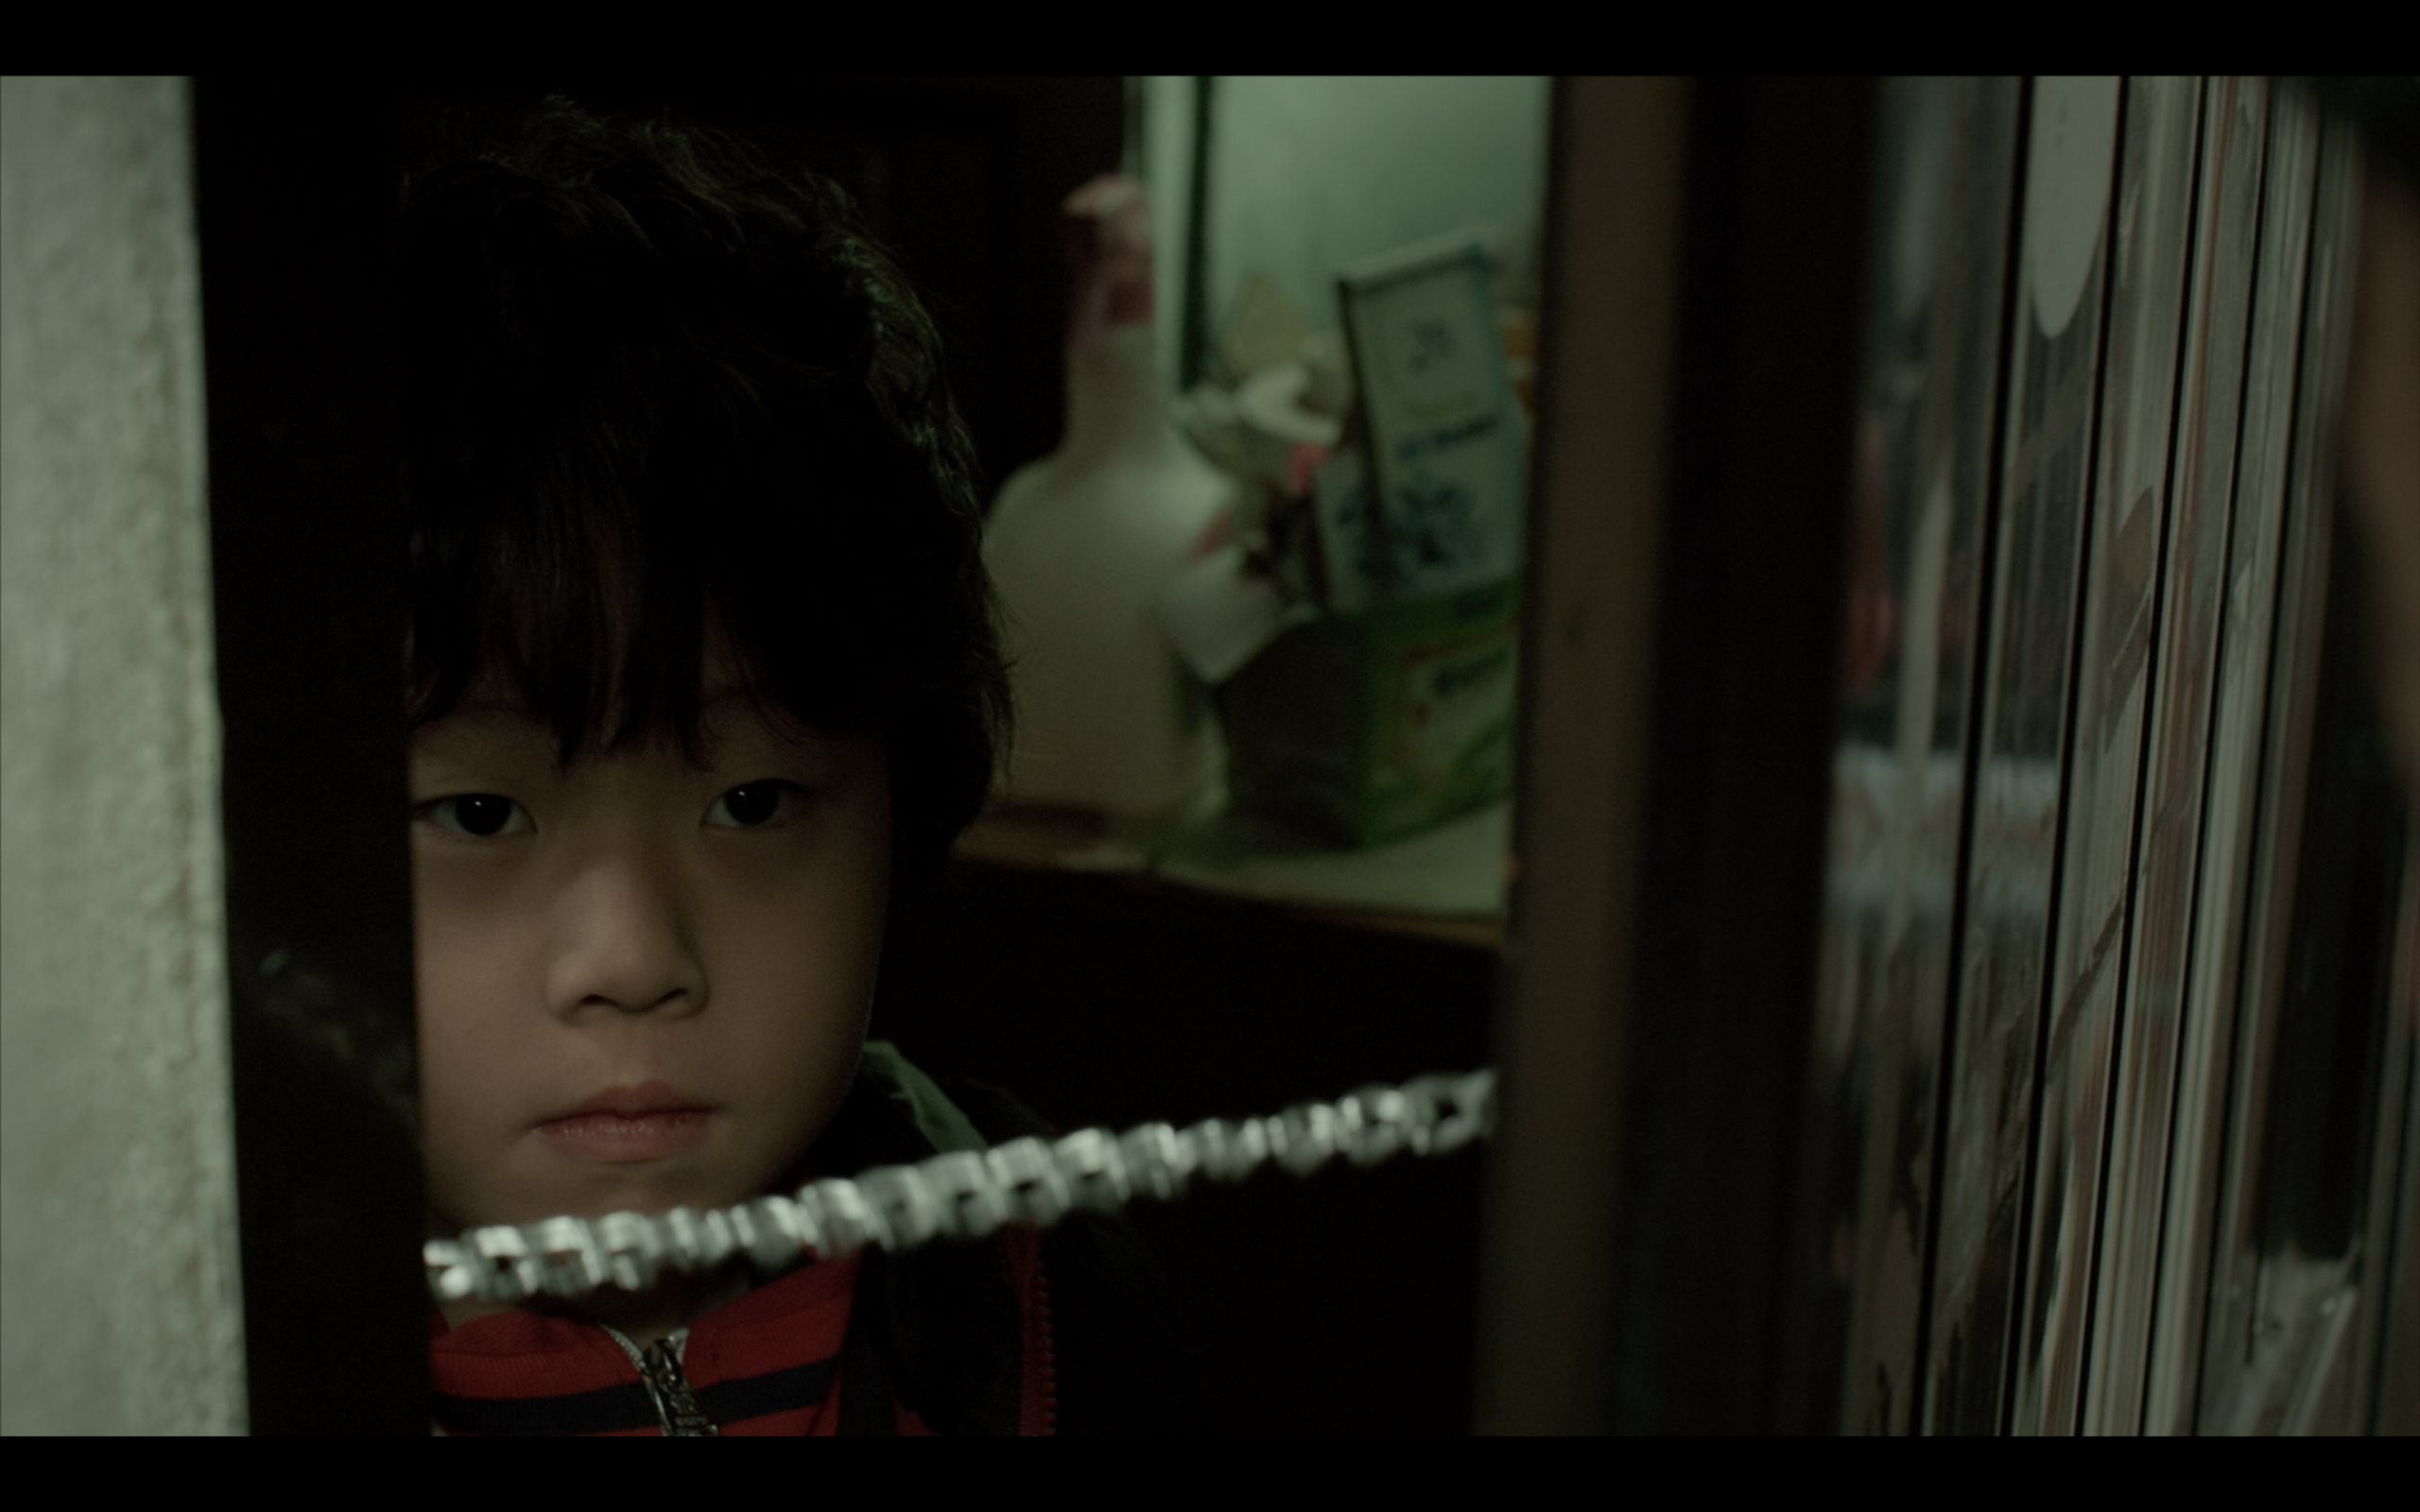 Very first appearance of the Kid played by Youngjoon Kim